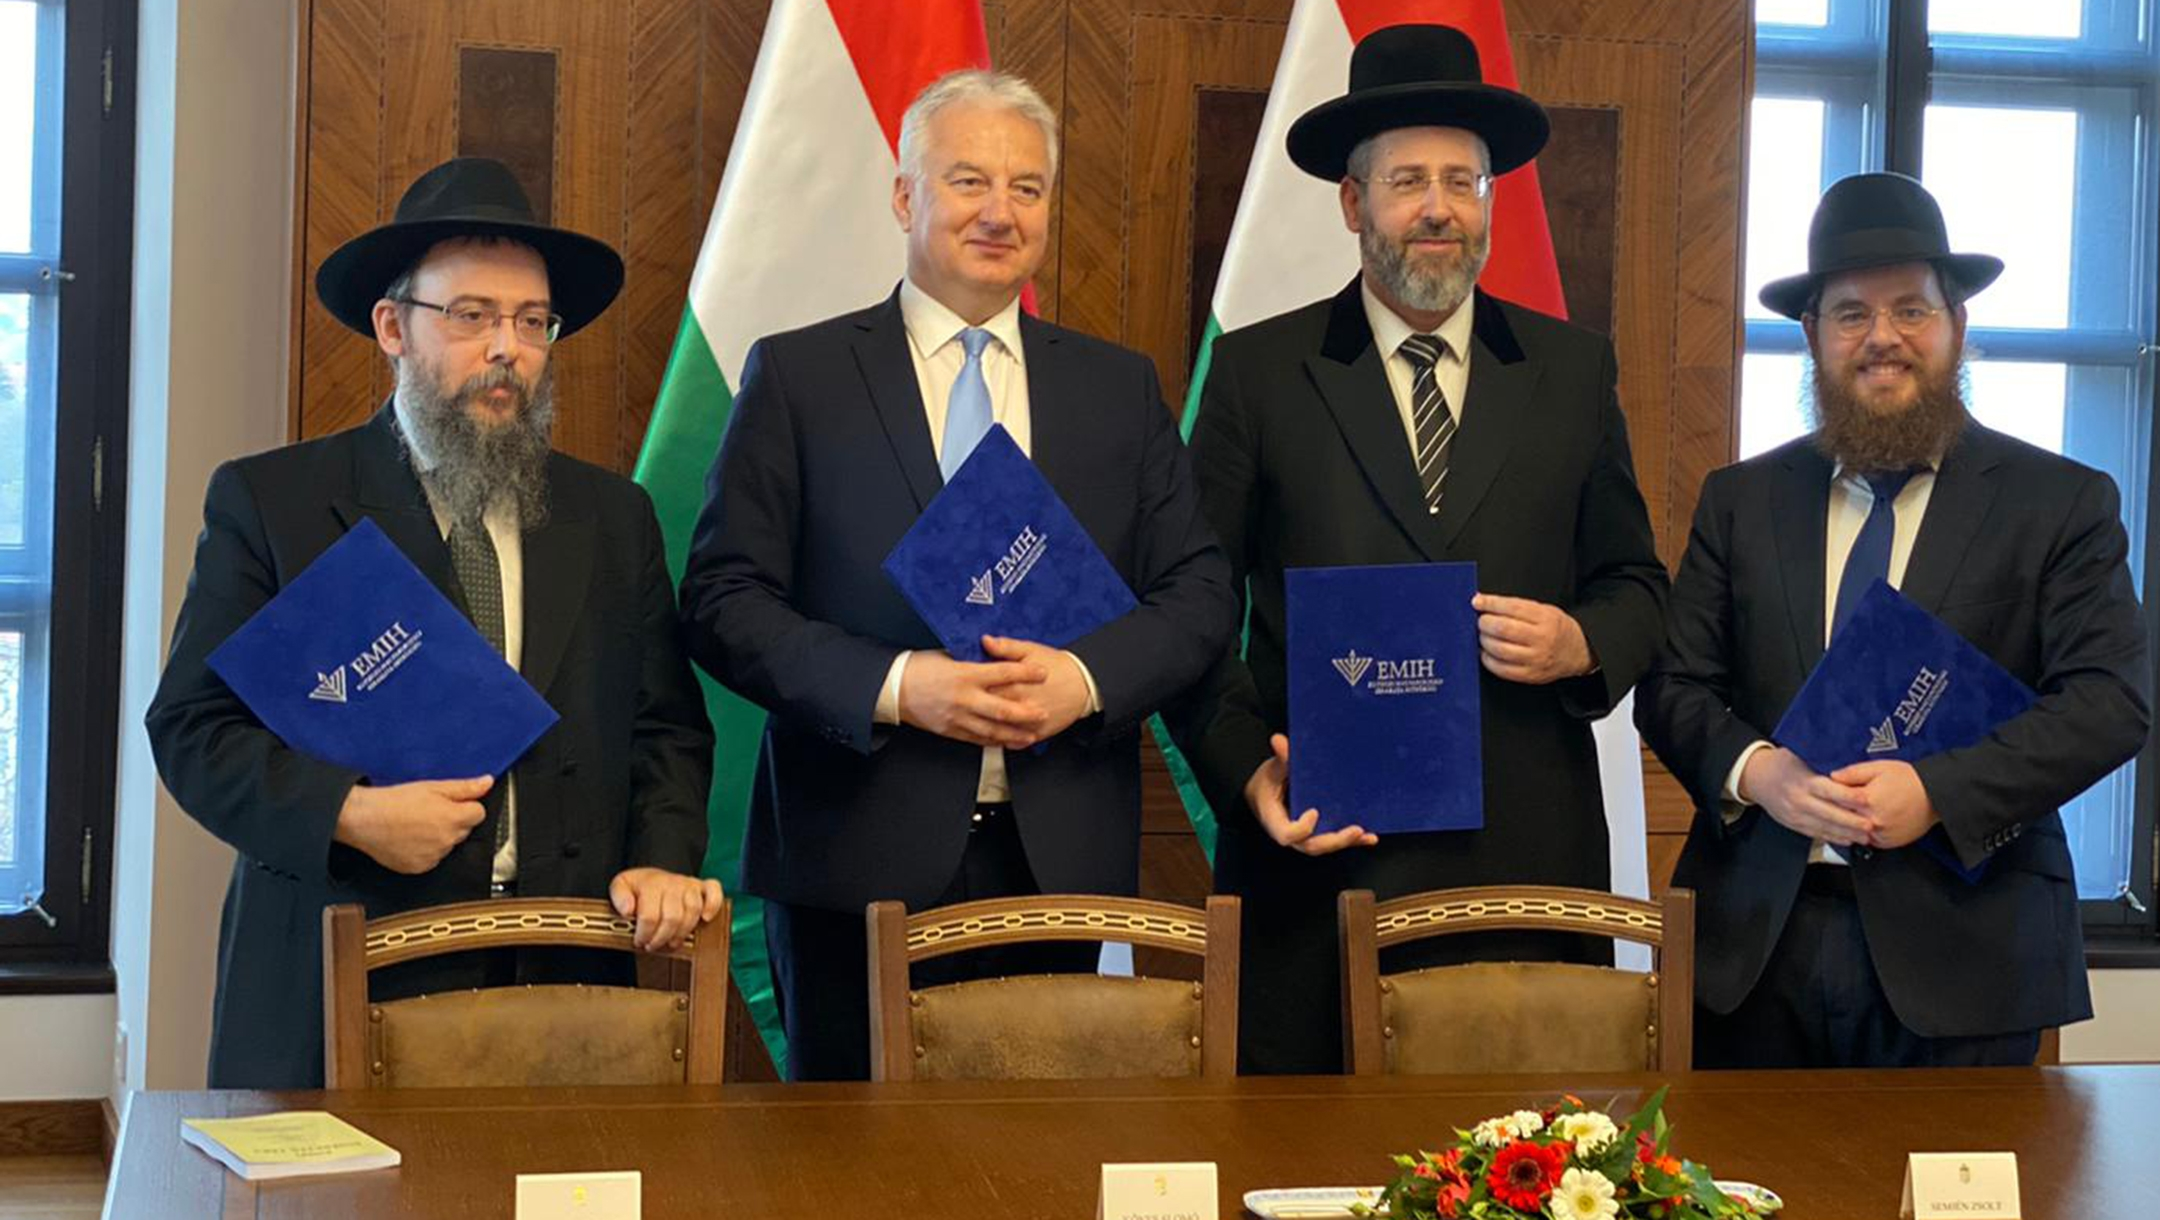 Hungary calls EU`s ruling against kosher slaughter a disgrace`